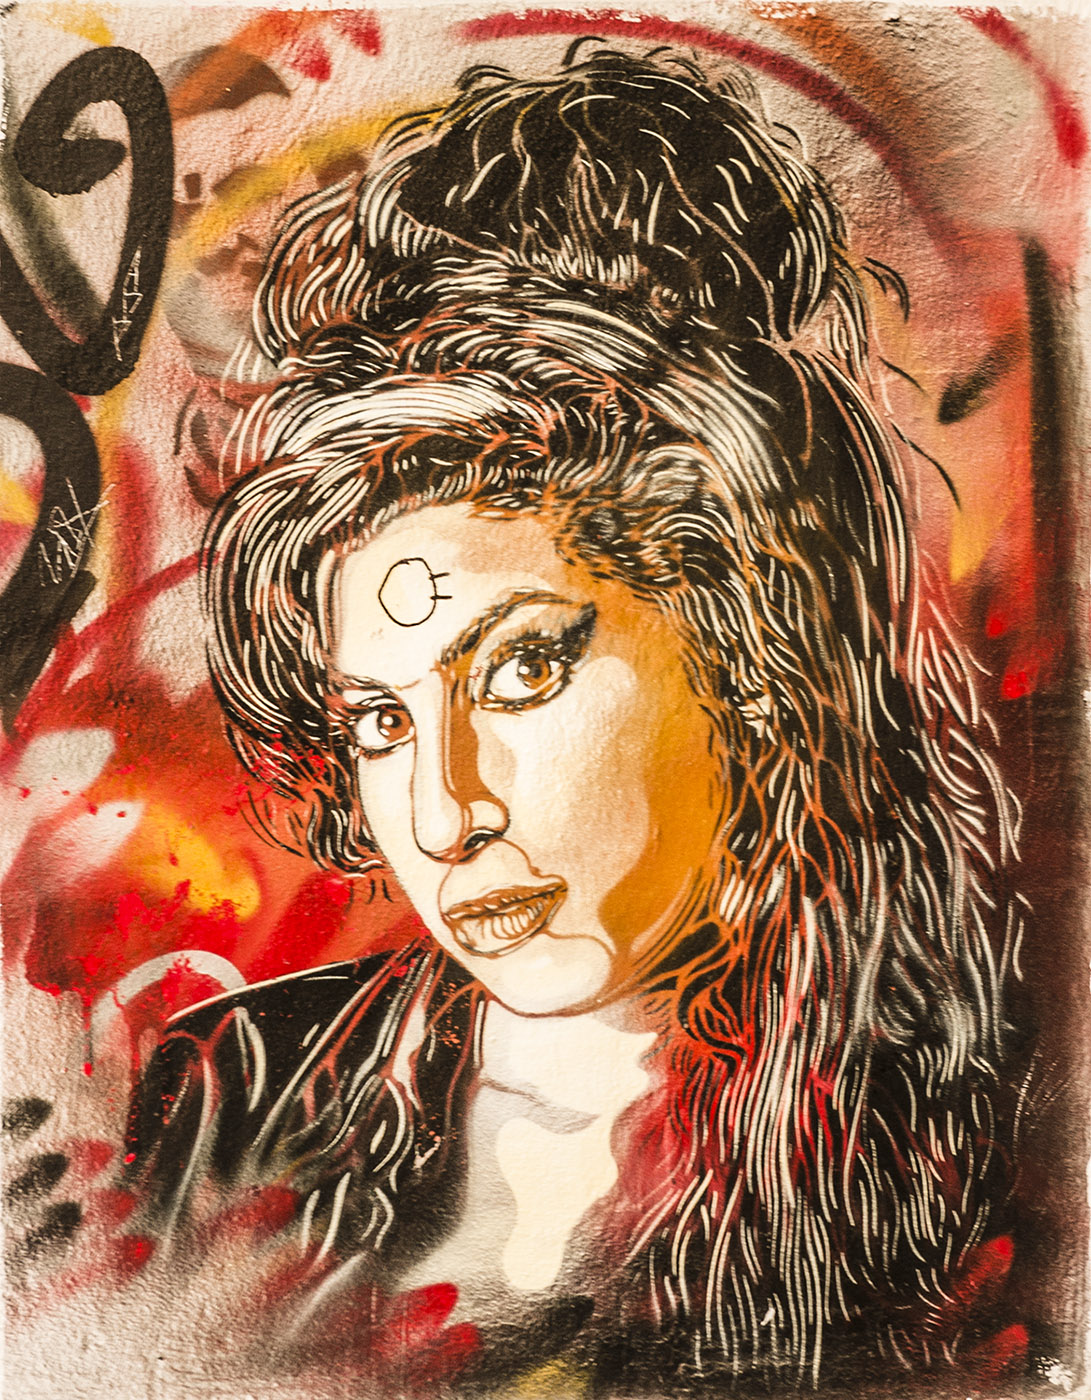 Street Art in Grenoble. Amy Winehouse